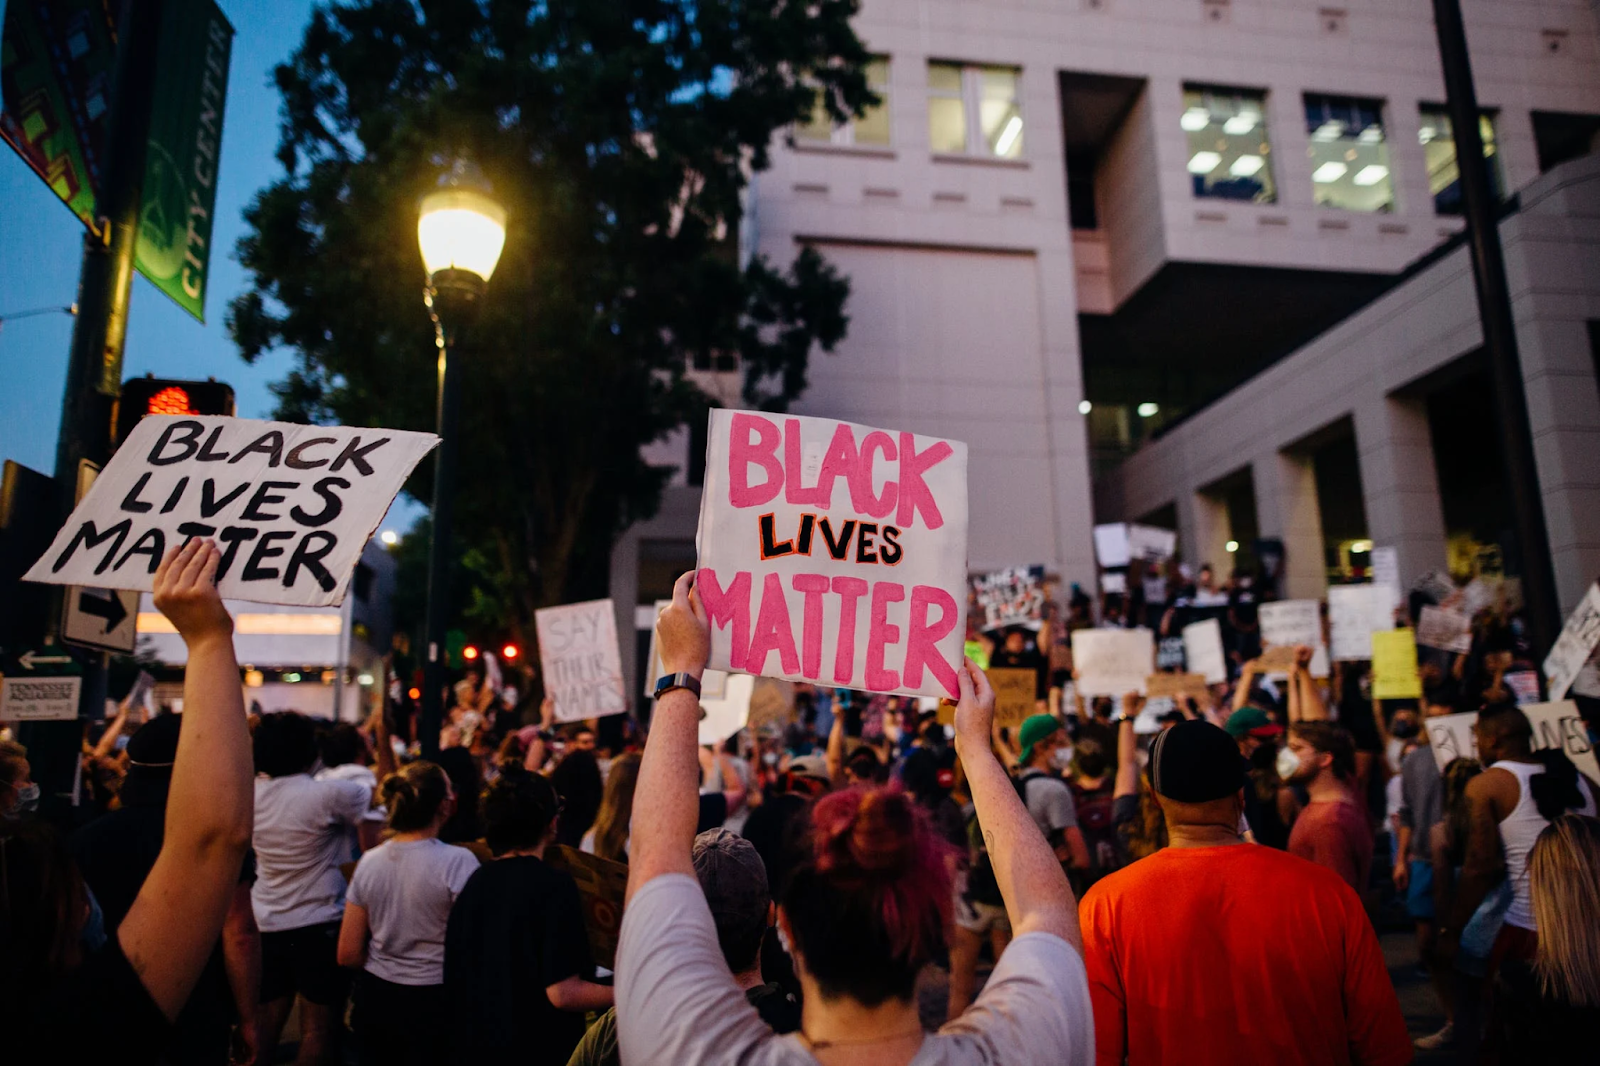 A Black Lives Matter protest.